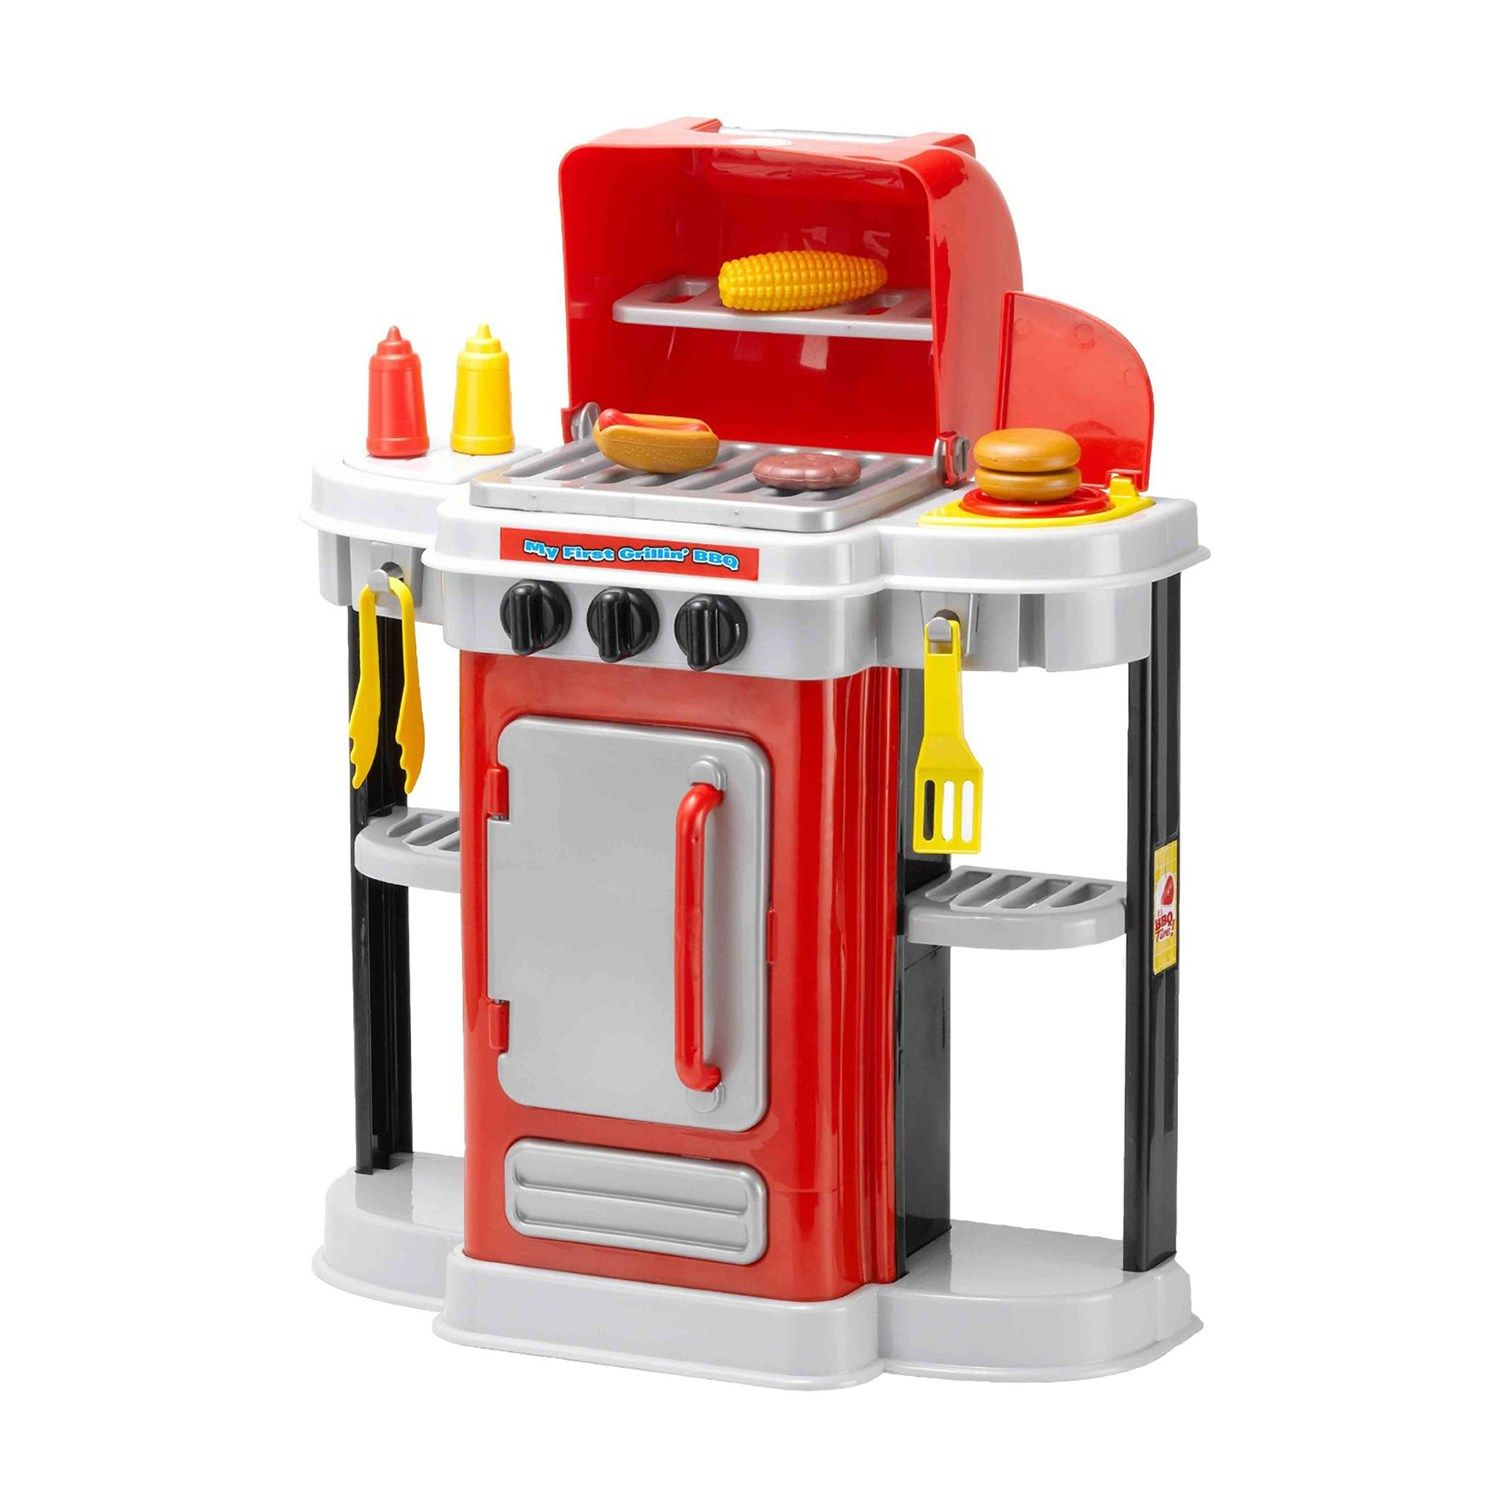 My First Grillin' BBQ Playset by Amloid Play kitchen